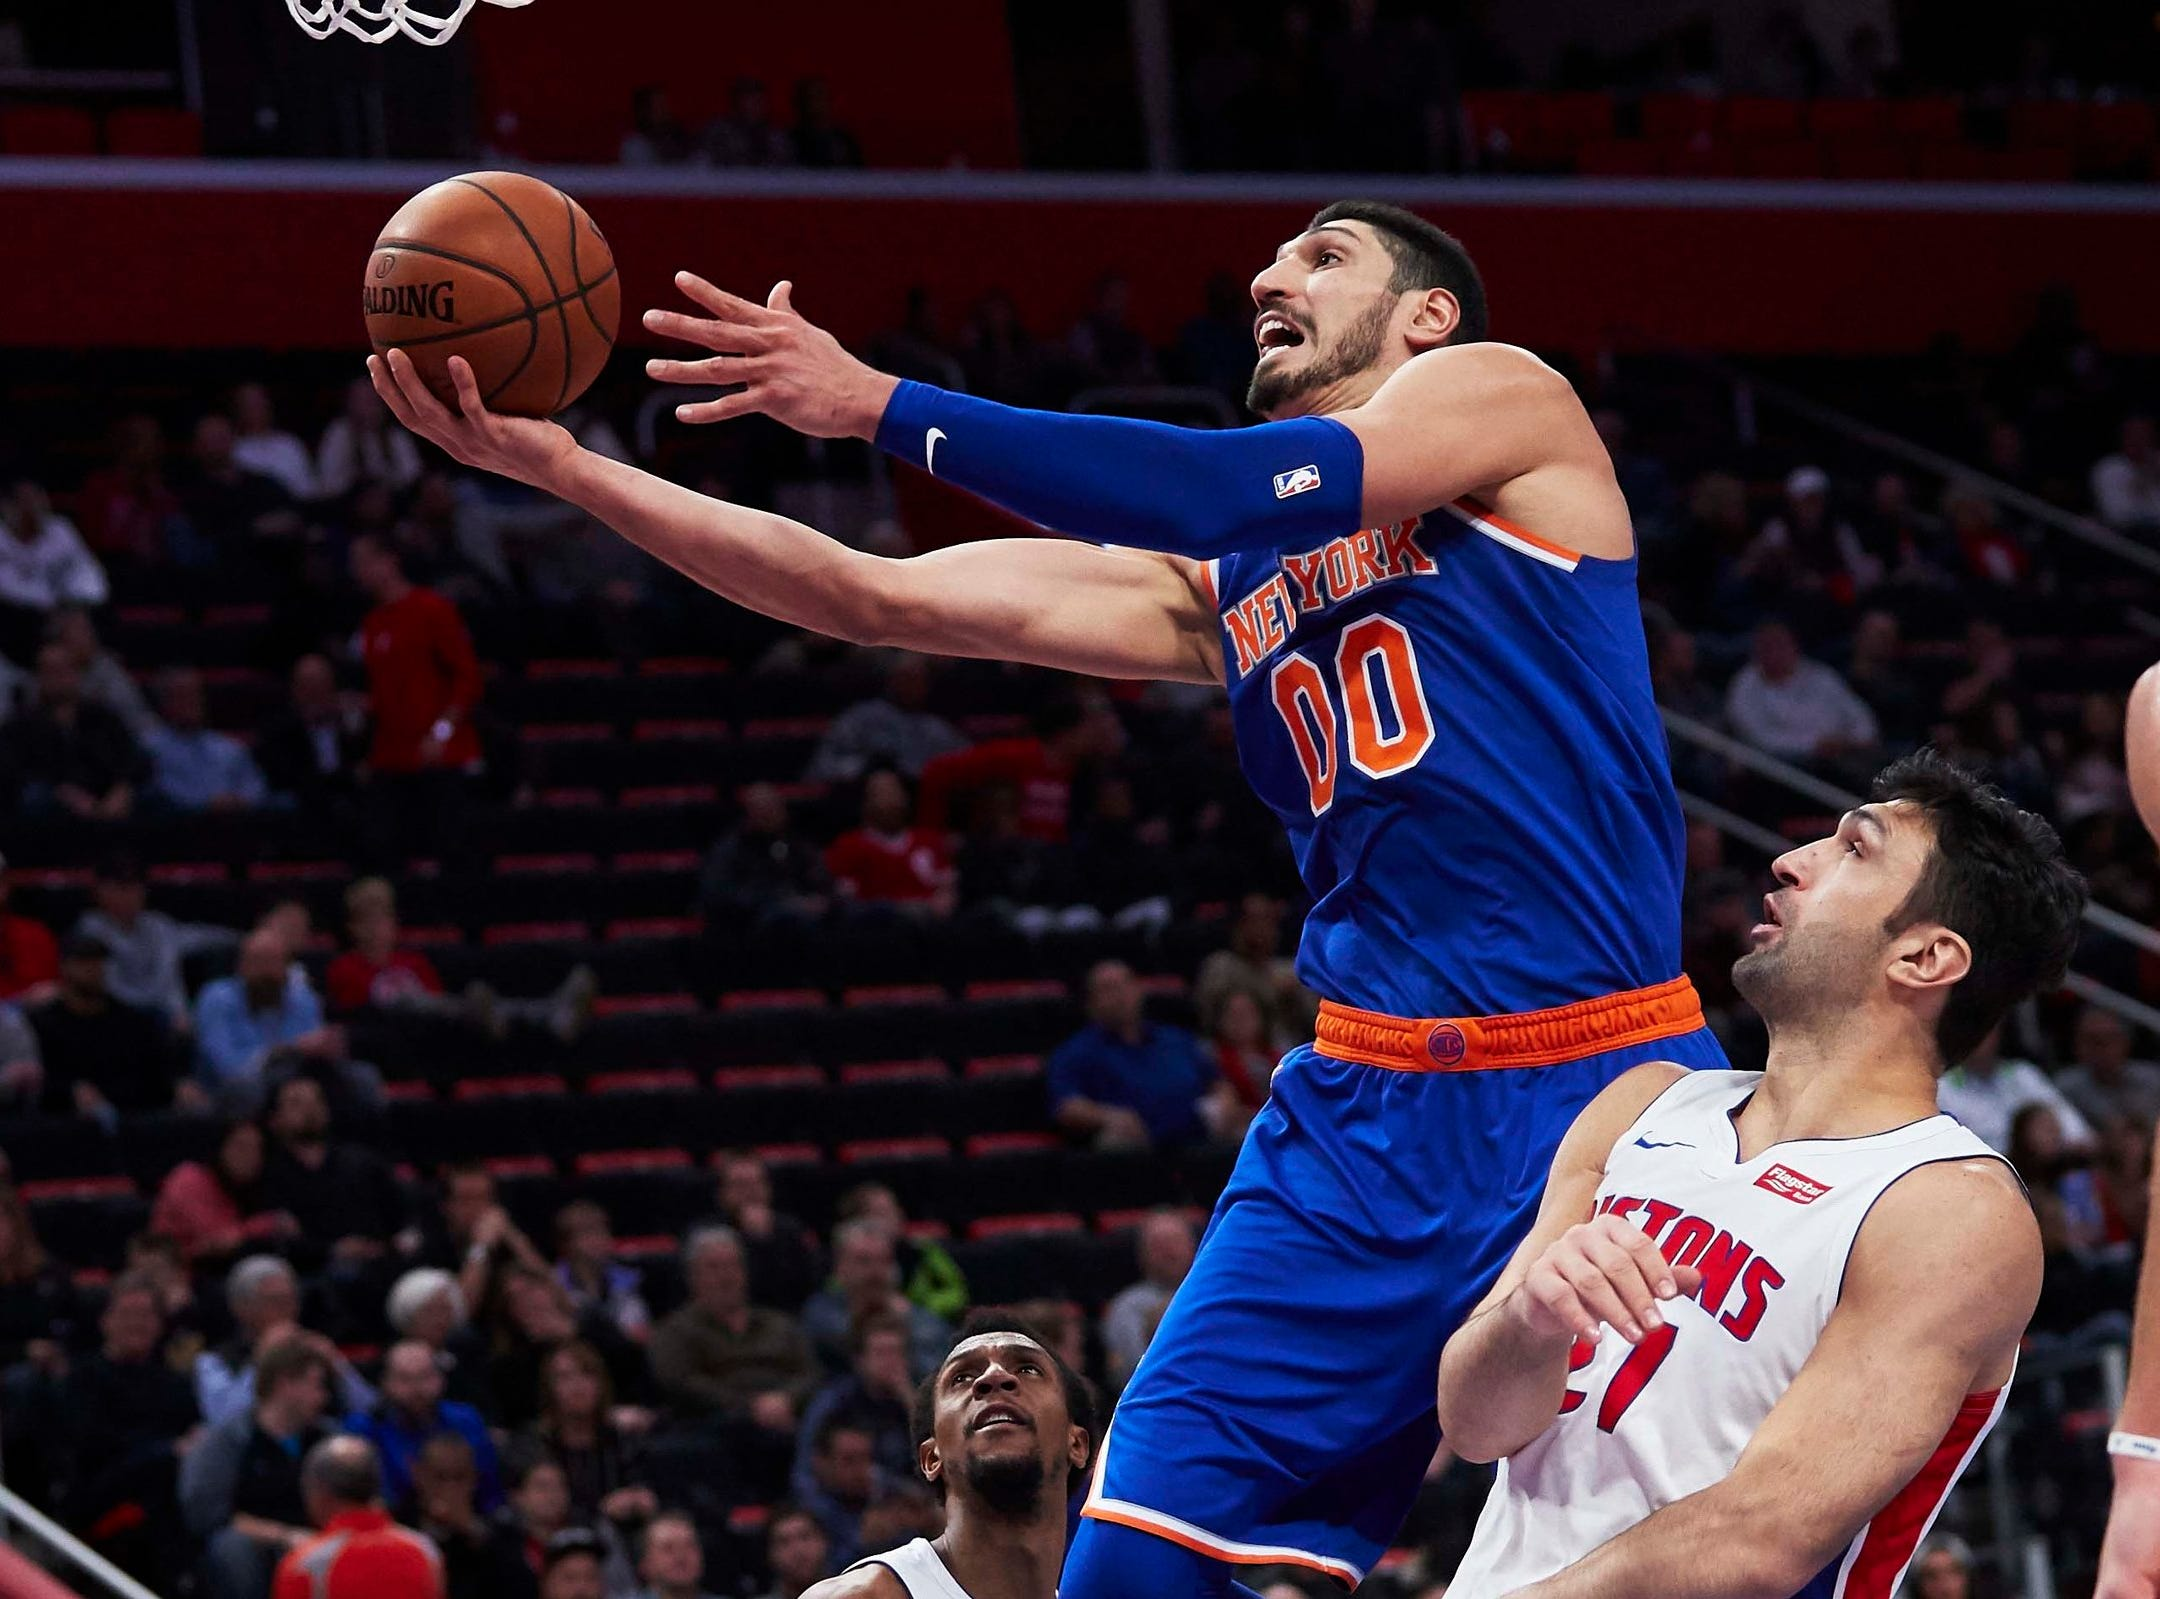 New York Knicks center Enes Kanter (00) goes to the basket on Detroit Pistons center Zaza Pachulia (27) in the second half at Little Caesars Arena.